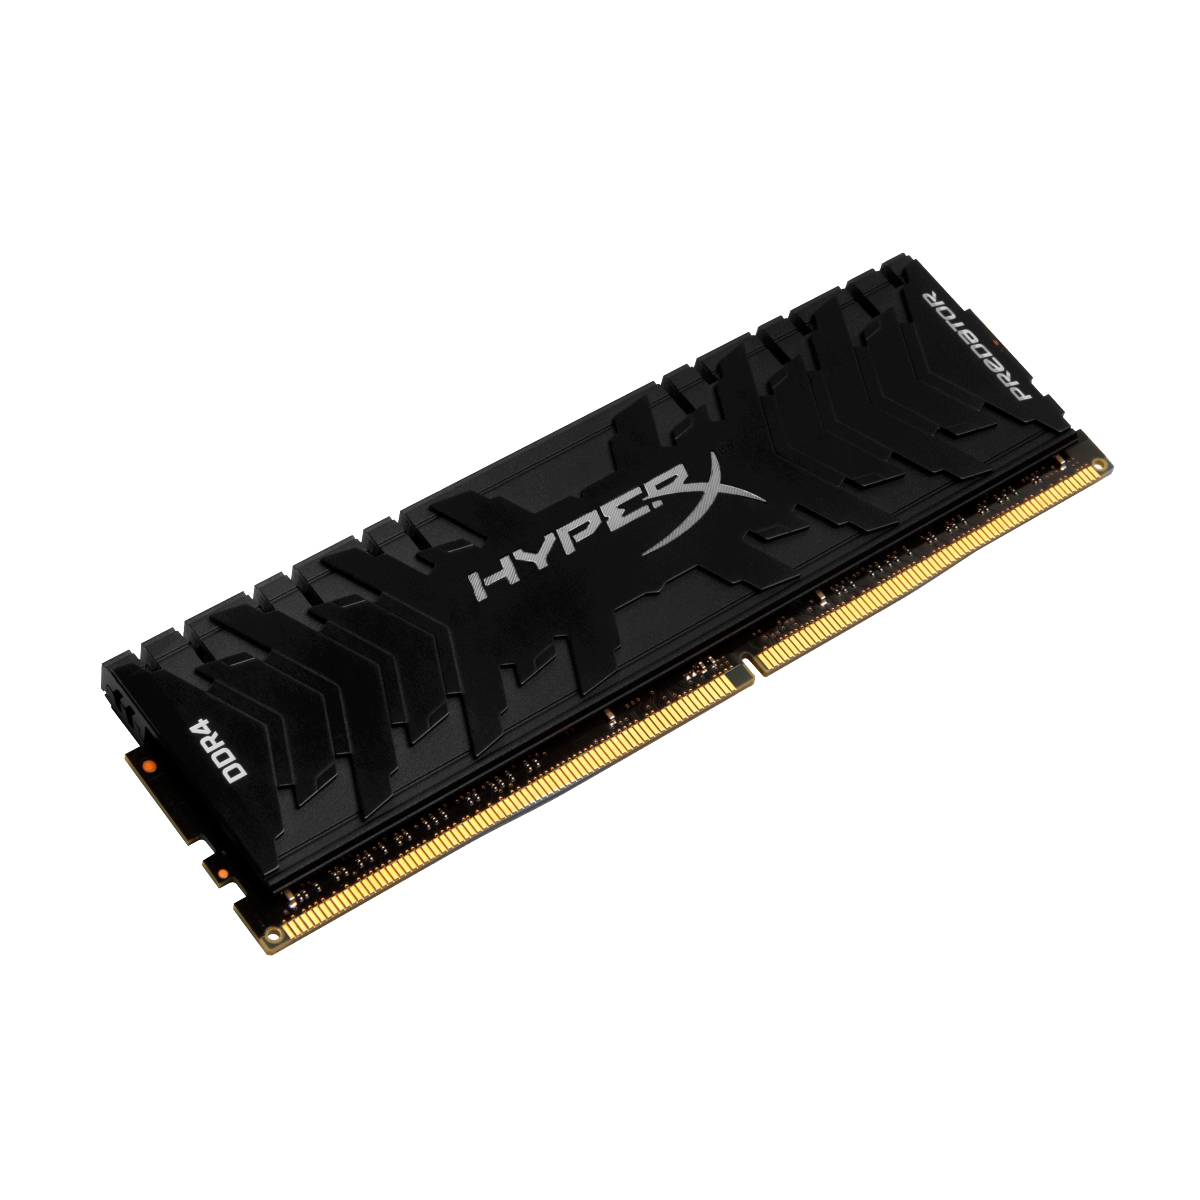 Memória DDR4 Kingston HyperX Predator, 8GB 3600MHZ, HX436C17PB4/8